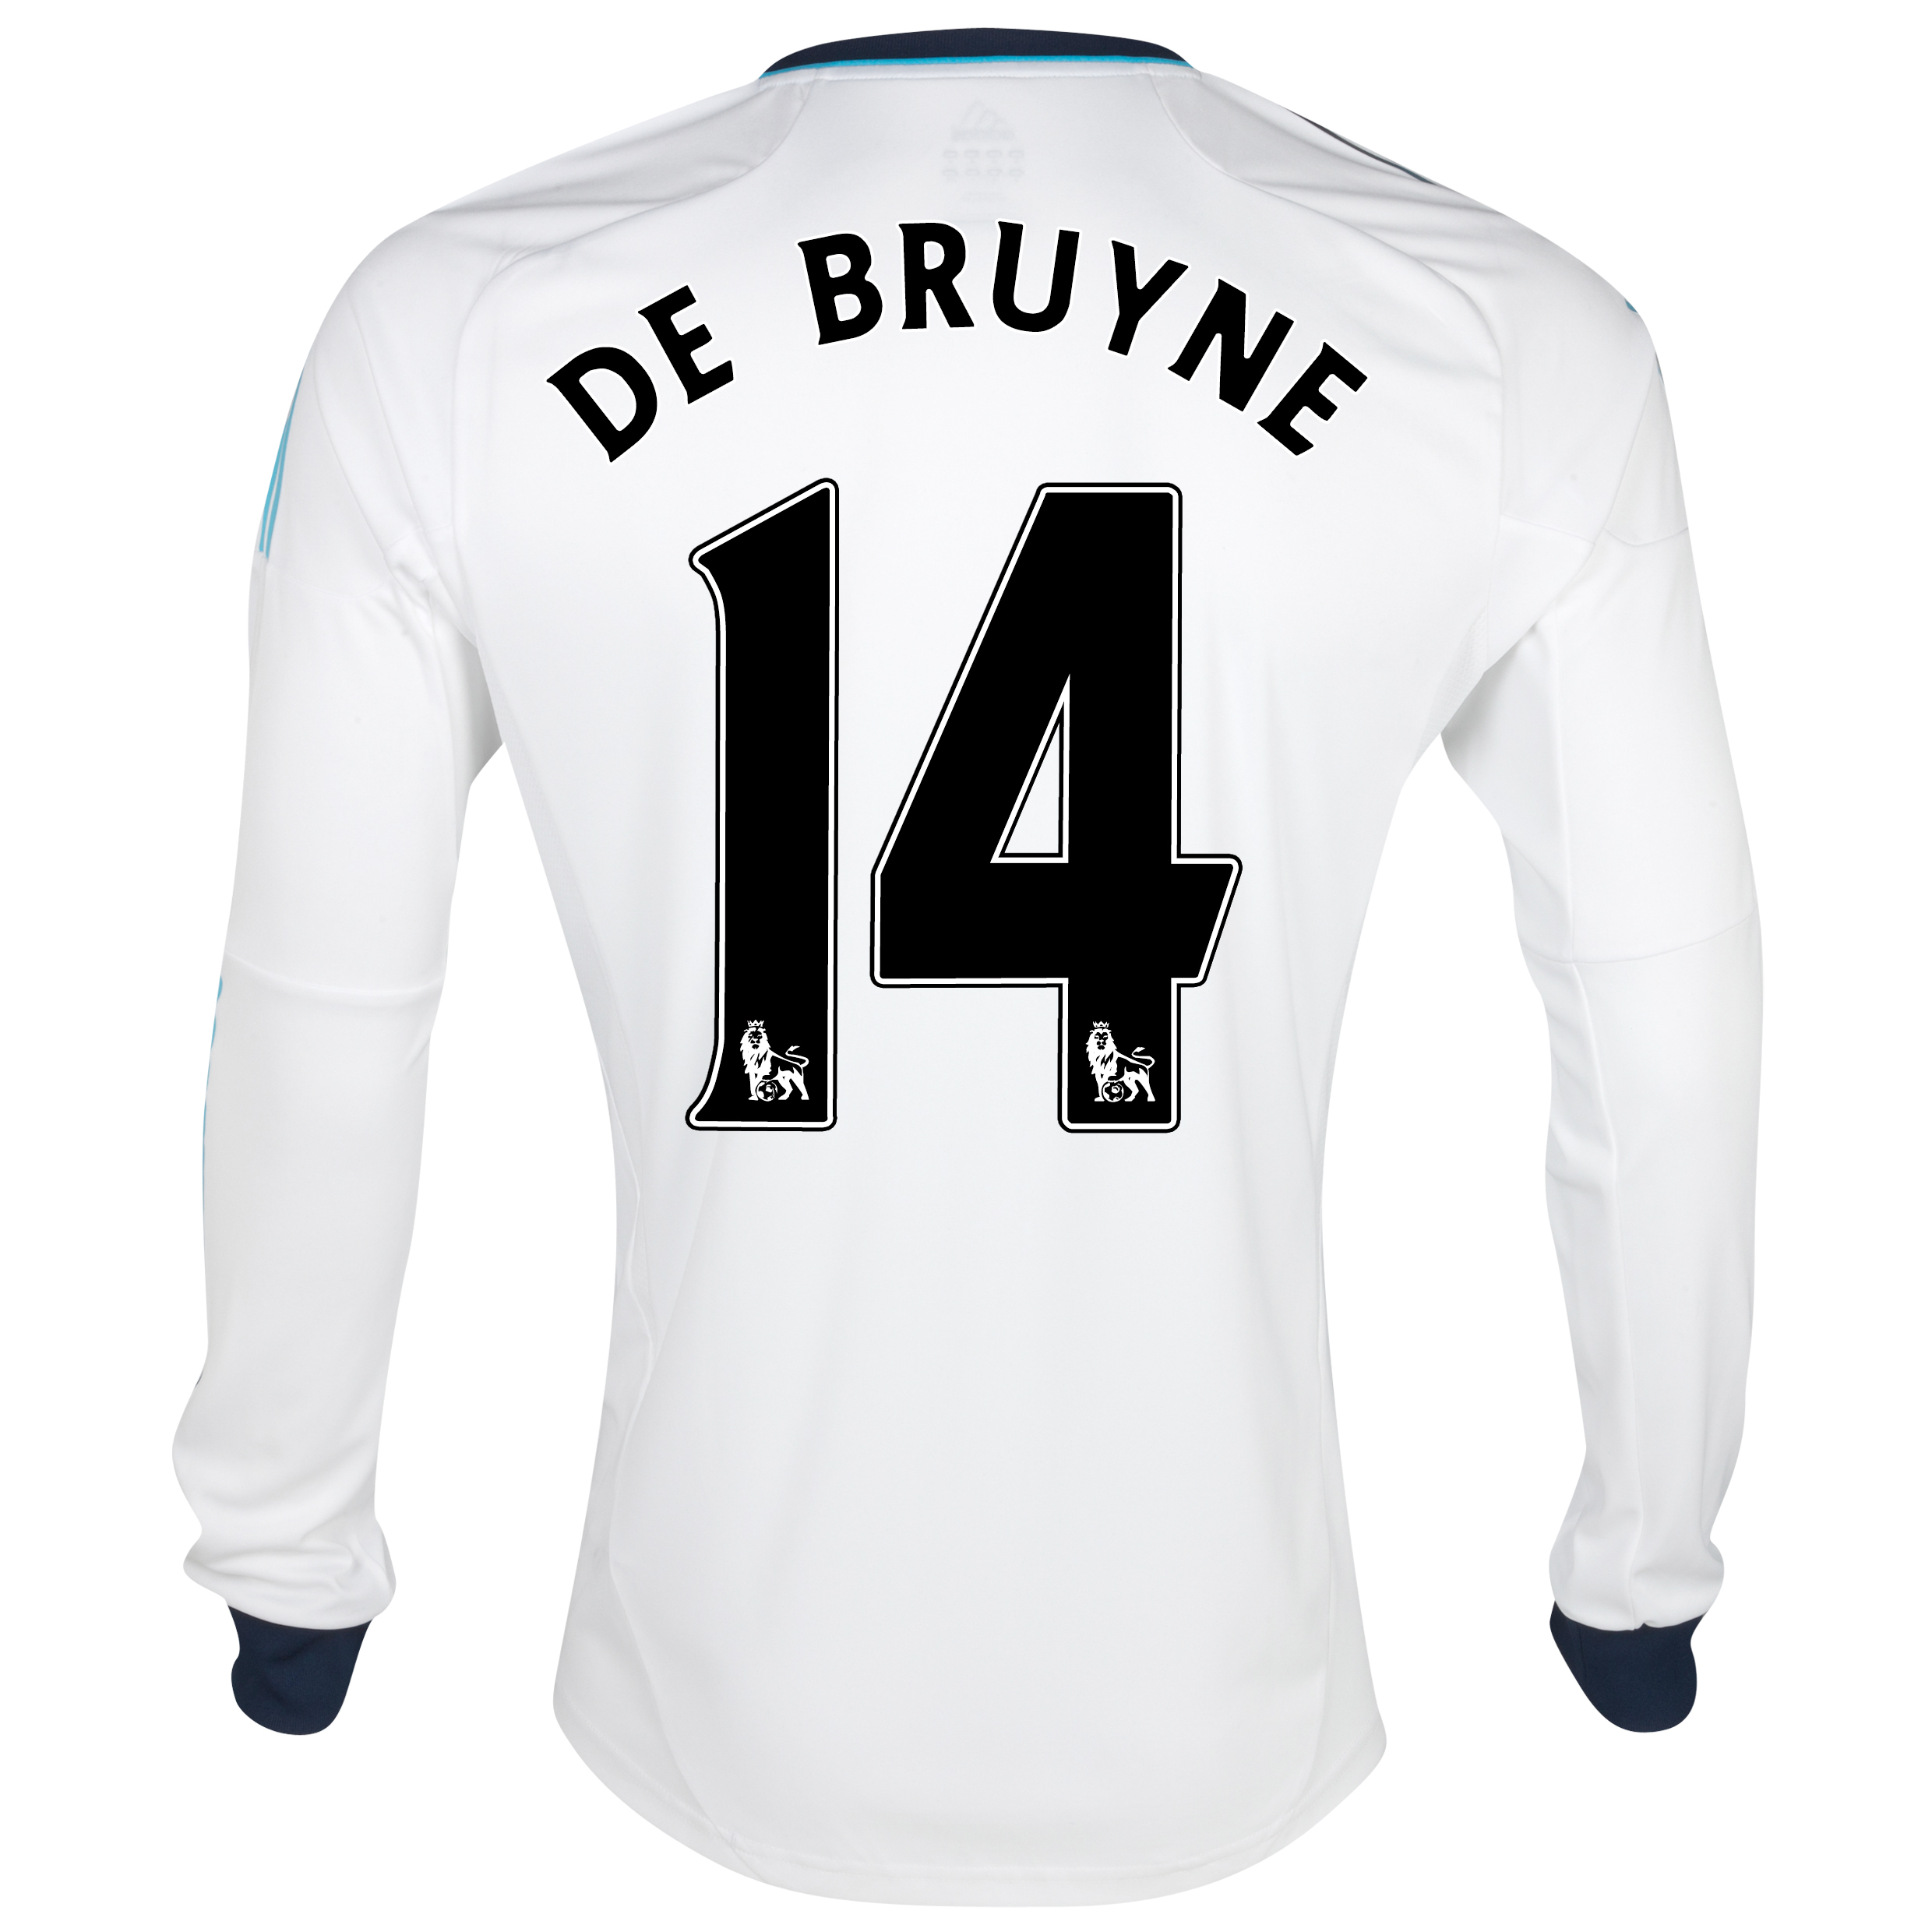 Chelsea Away Shirt 2012/13 - Long Sleeved with De Bruyne 14 printing